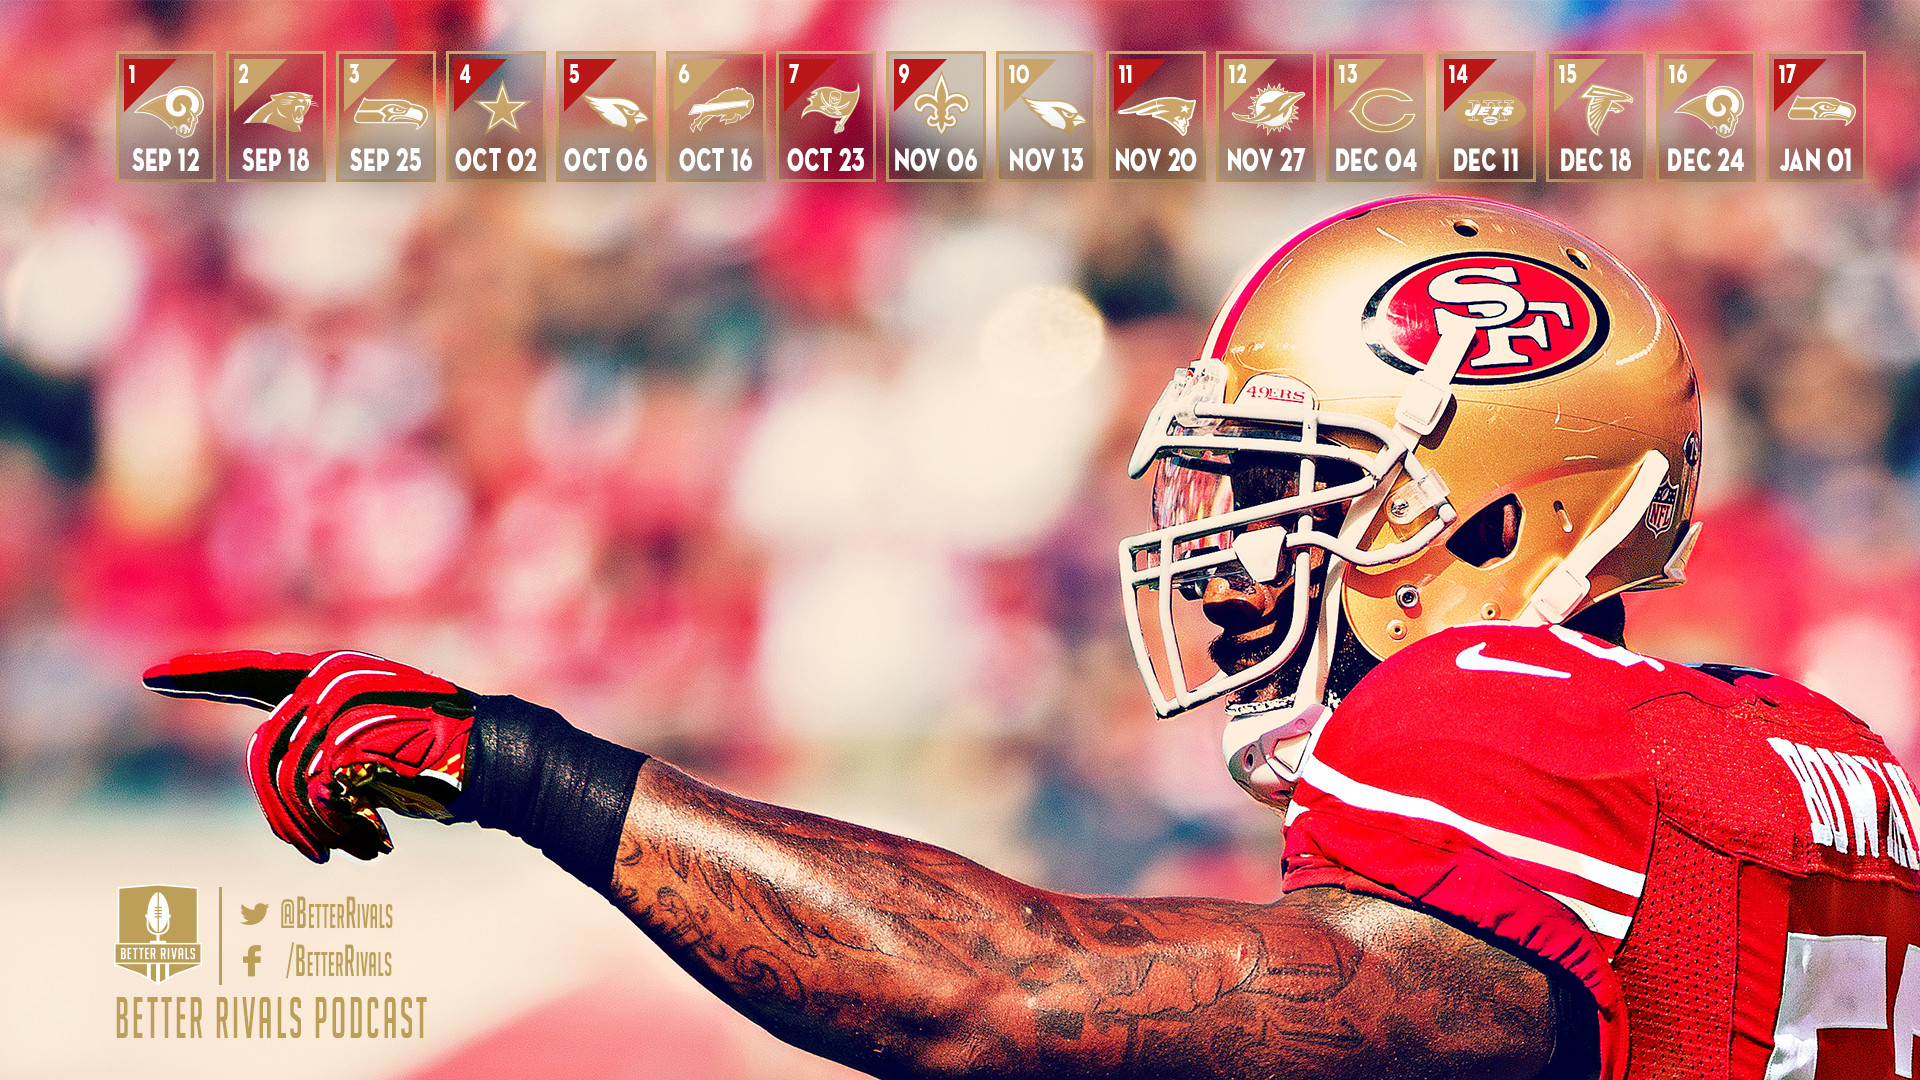 1920x1080 New 49ers Wallpapers for Desktop and Mobile · Download ... san ...